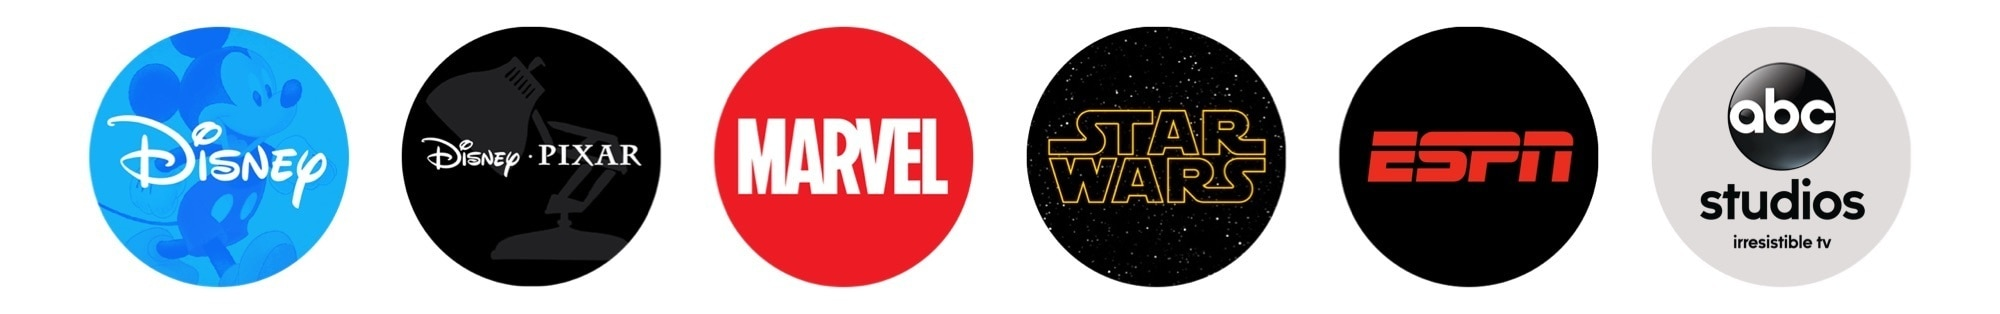 Disney Media Sales & Partnerships | Our Brands